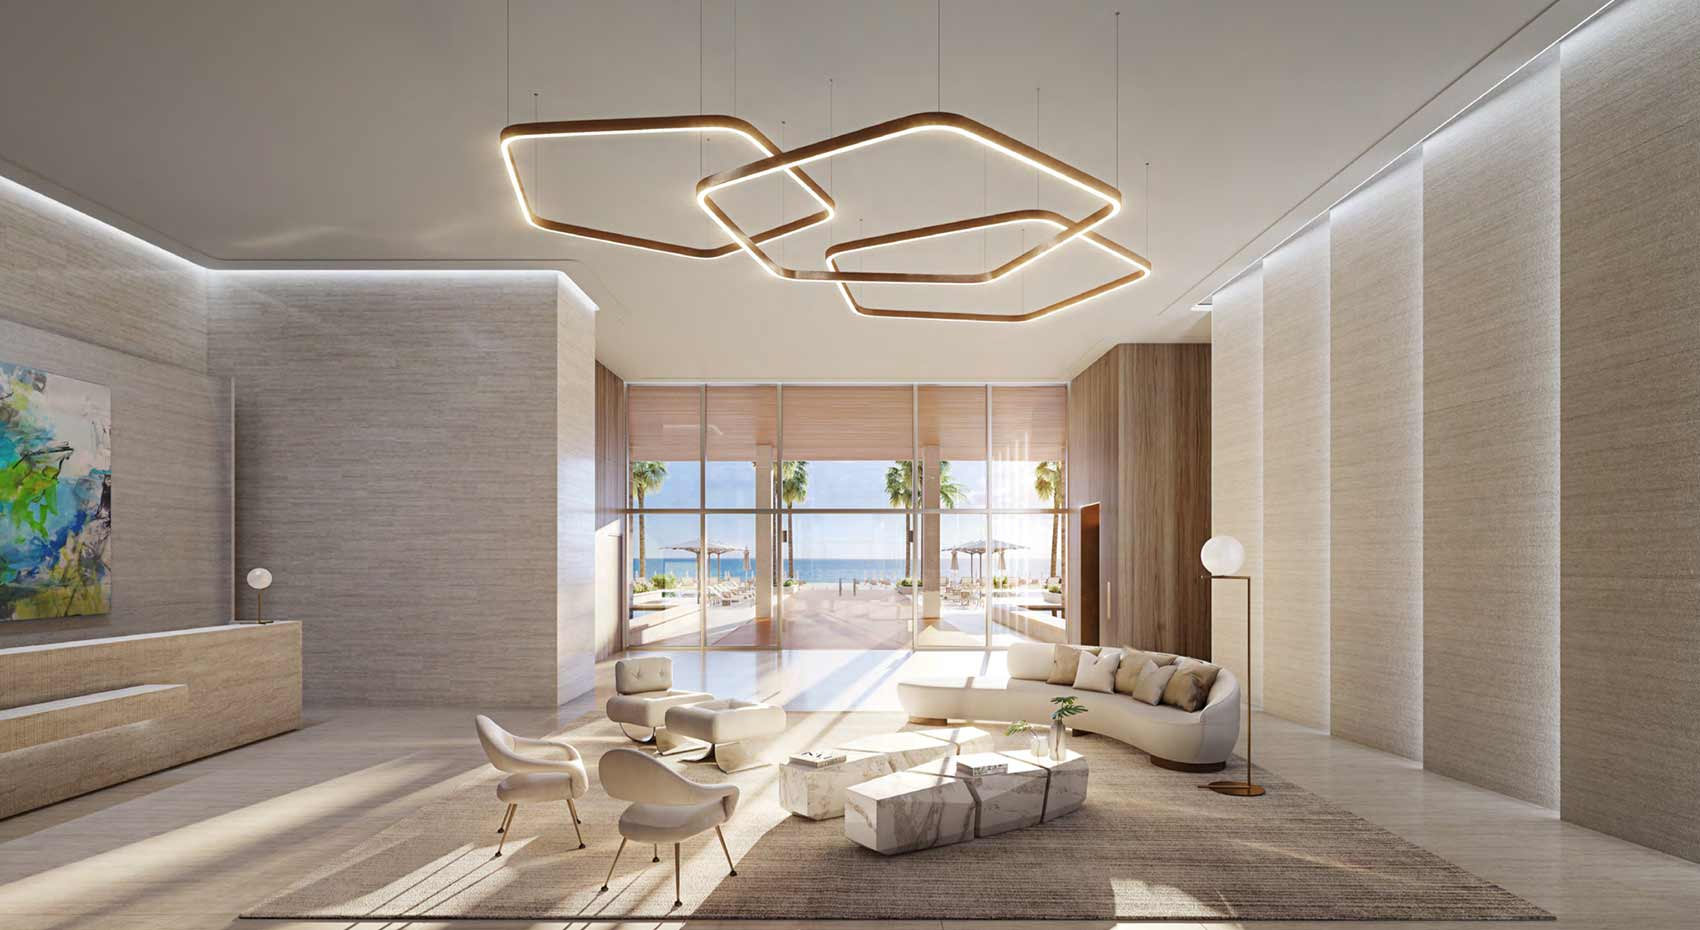 57Ocean-Miami-Beach-beach-interior